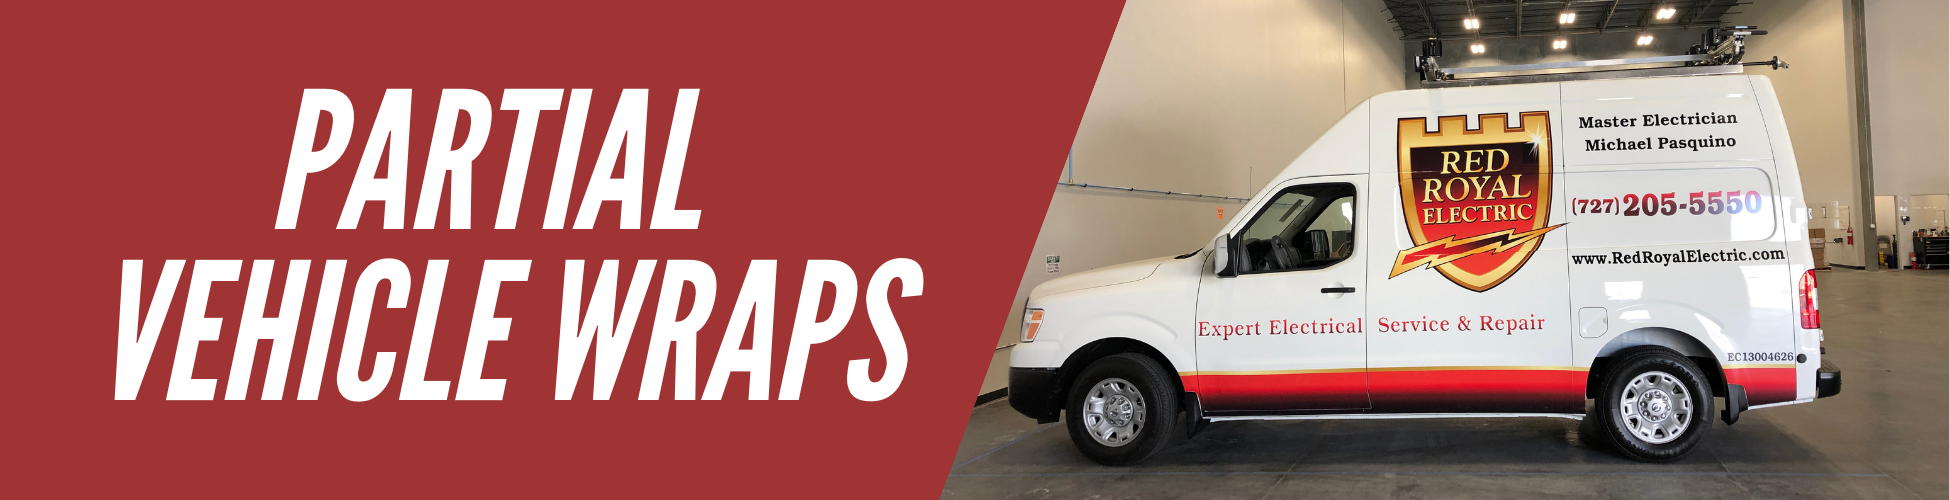 partial-vehicle-wraps-banner-v2.png